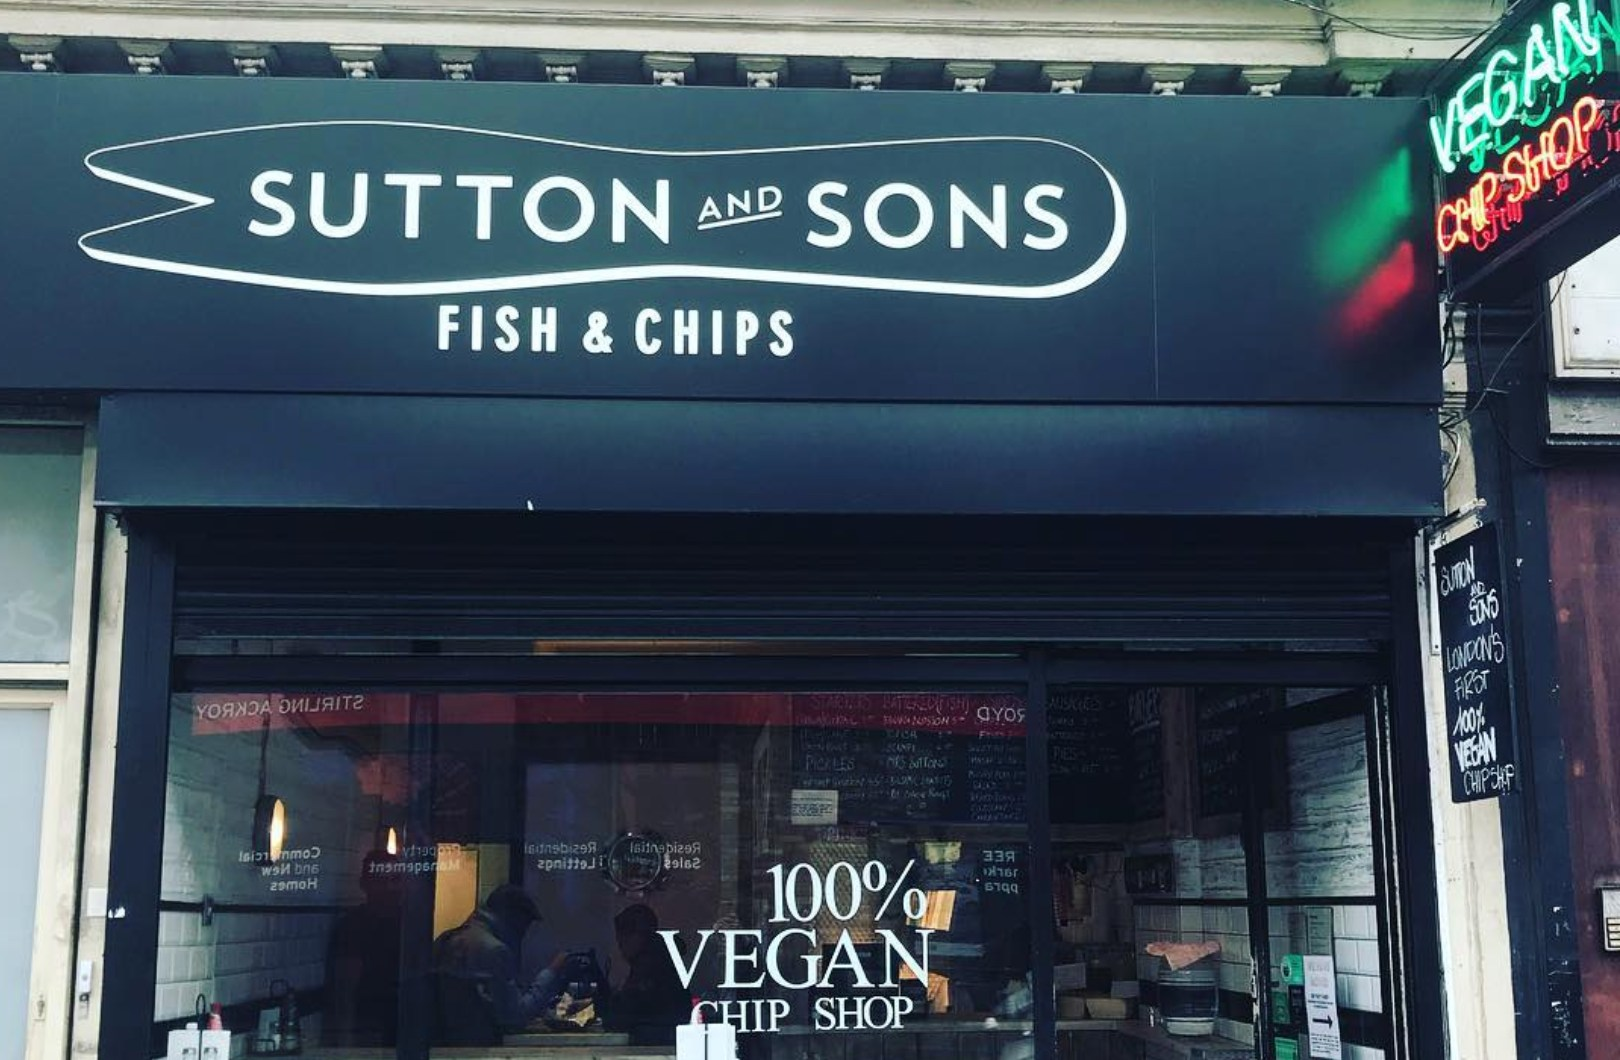 Sutton and Sons vegan outlet in Hackney